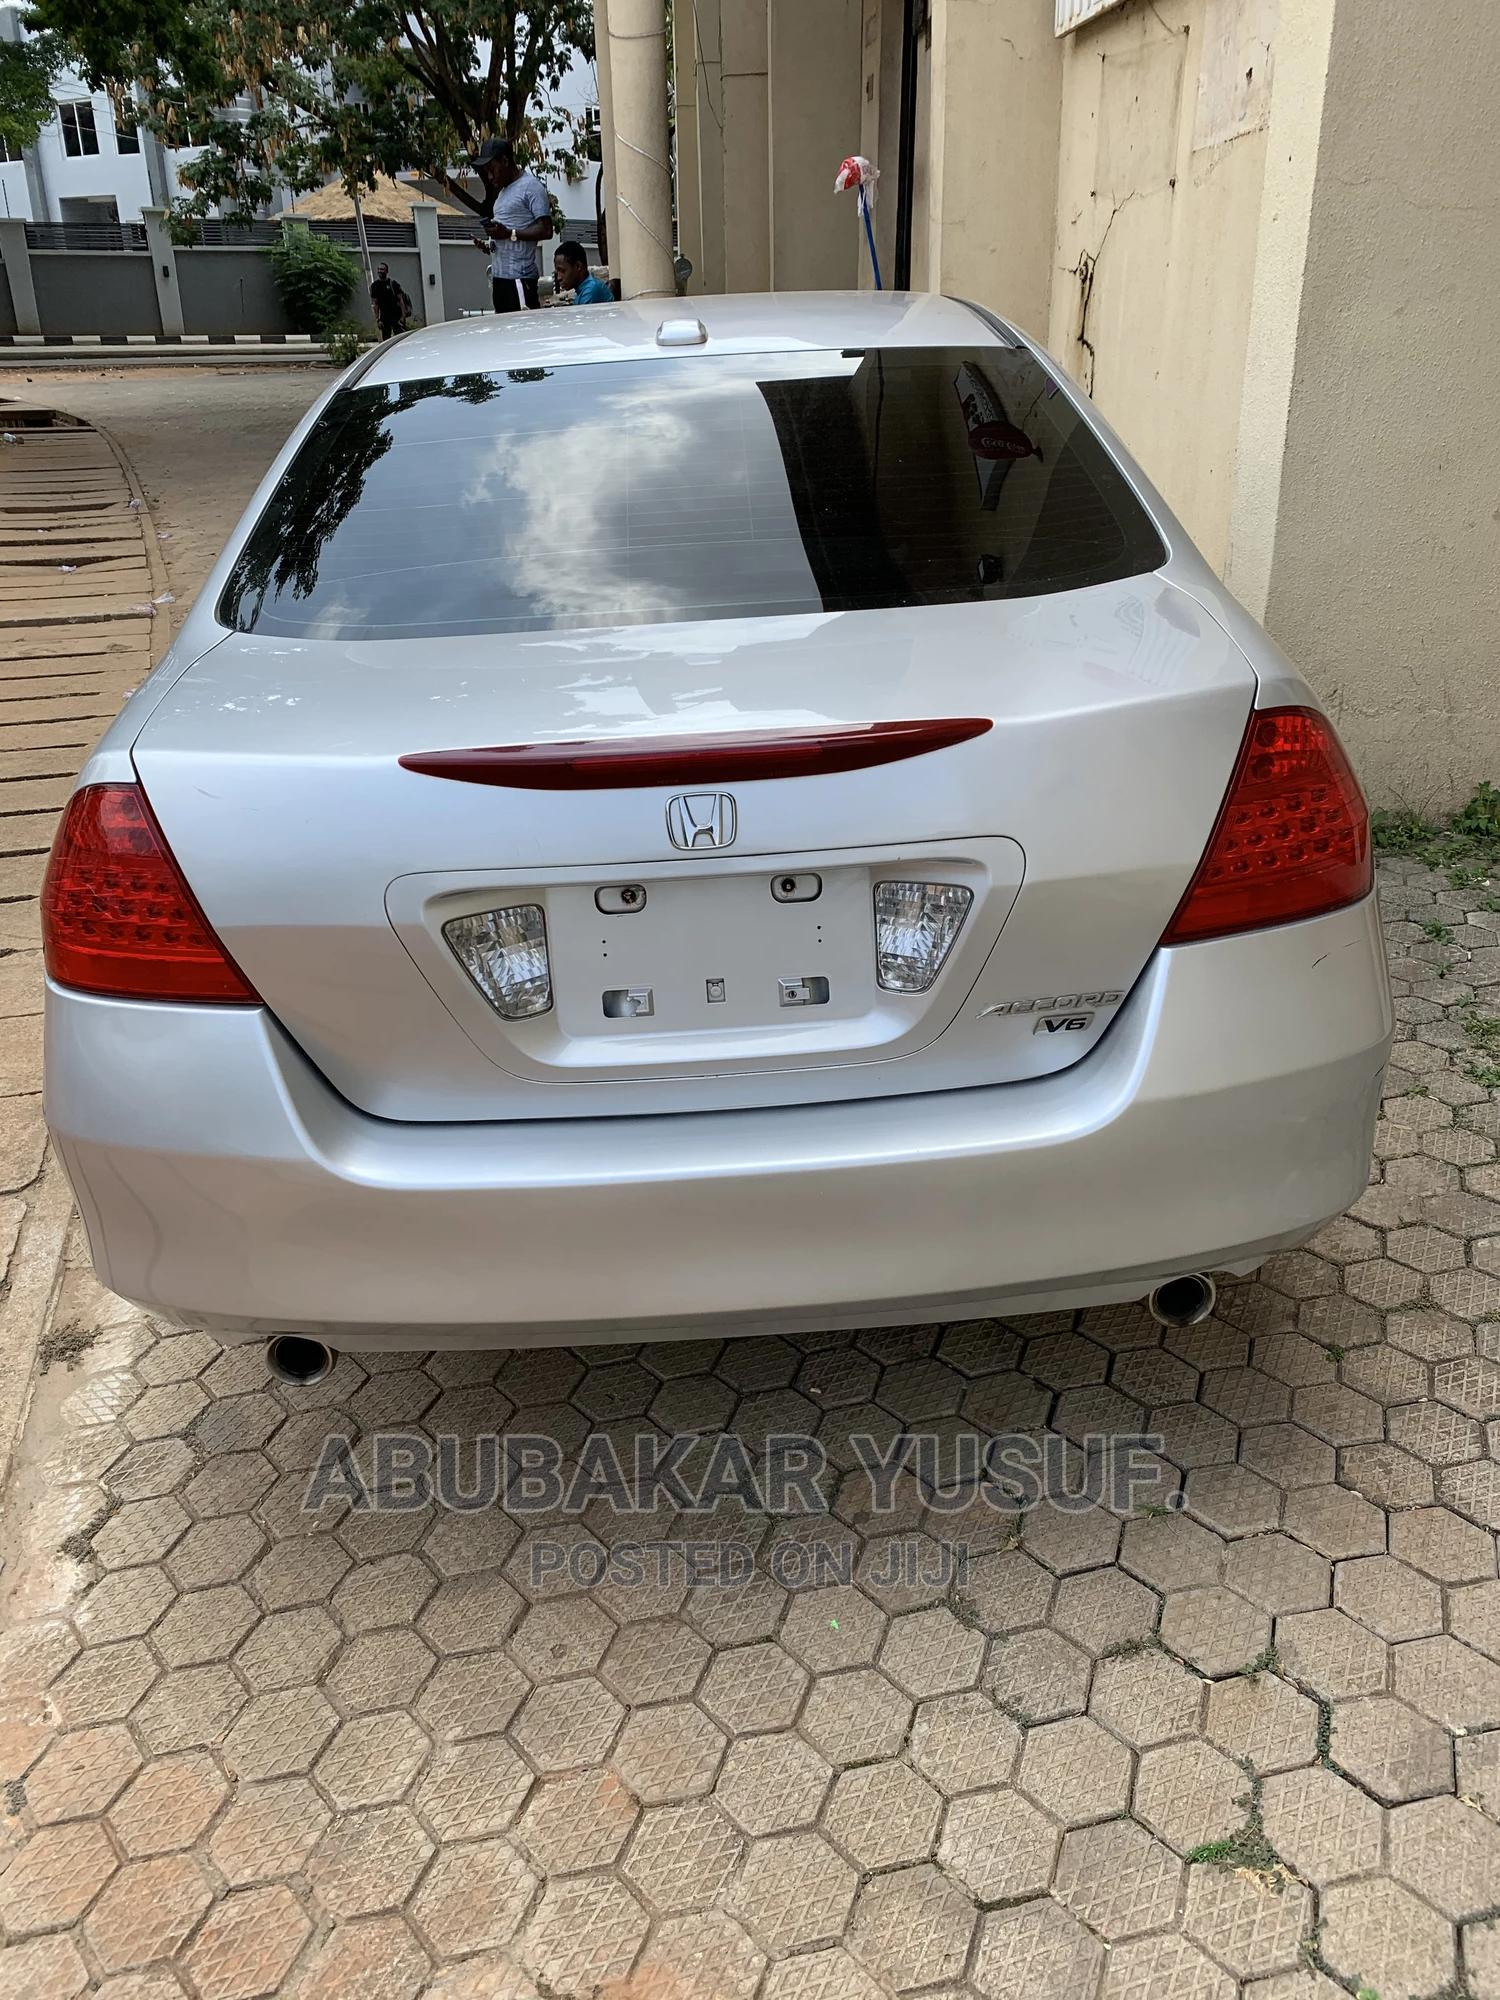 New Honda Accord 2006 Silver   Cars for sale in Wuse, Abuja (FCT) State, Nigeria